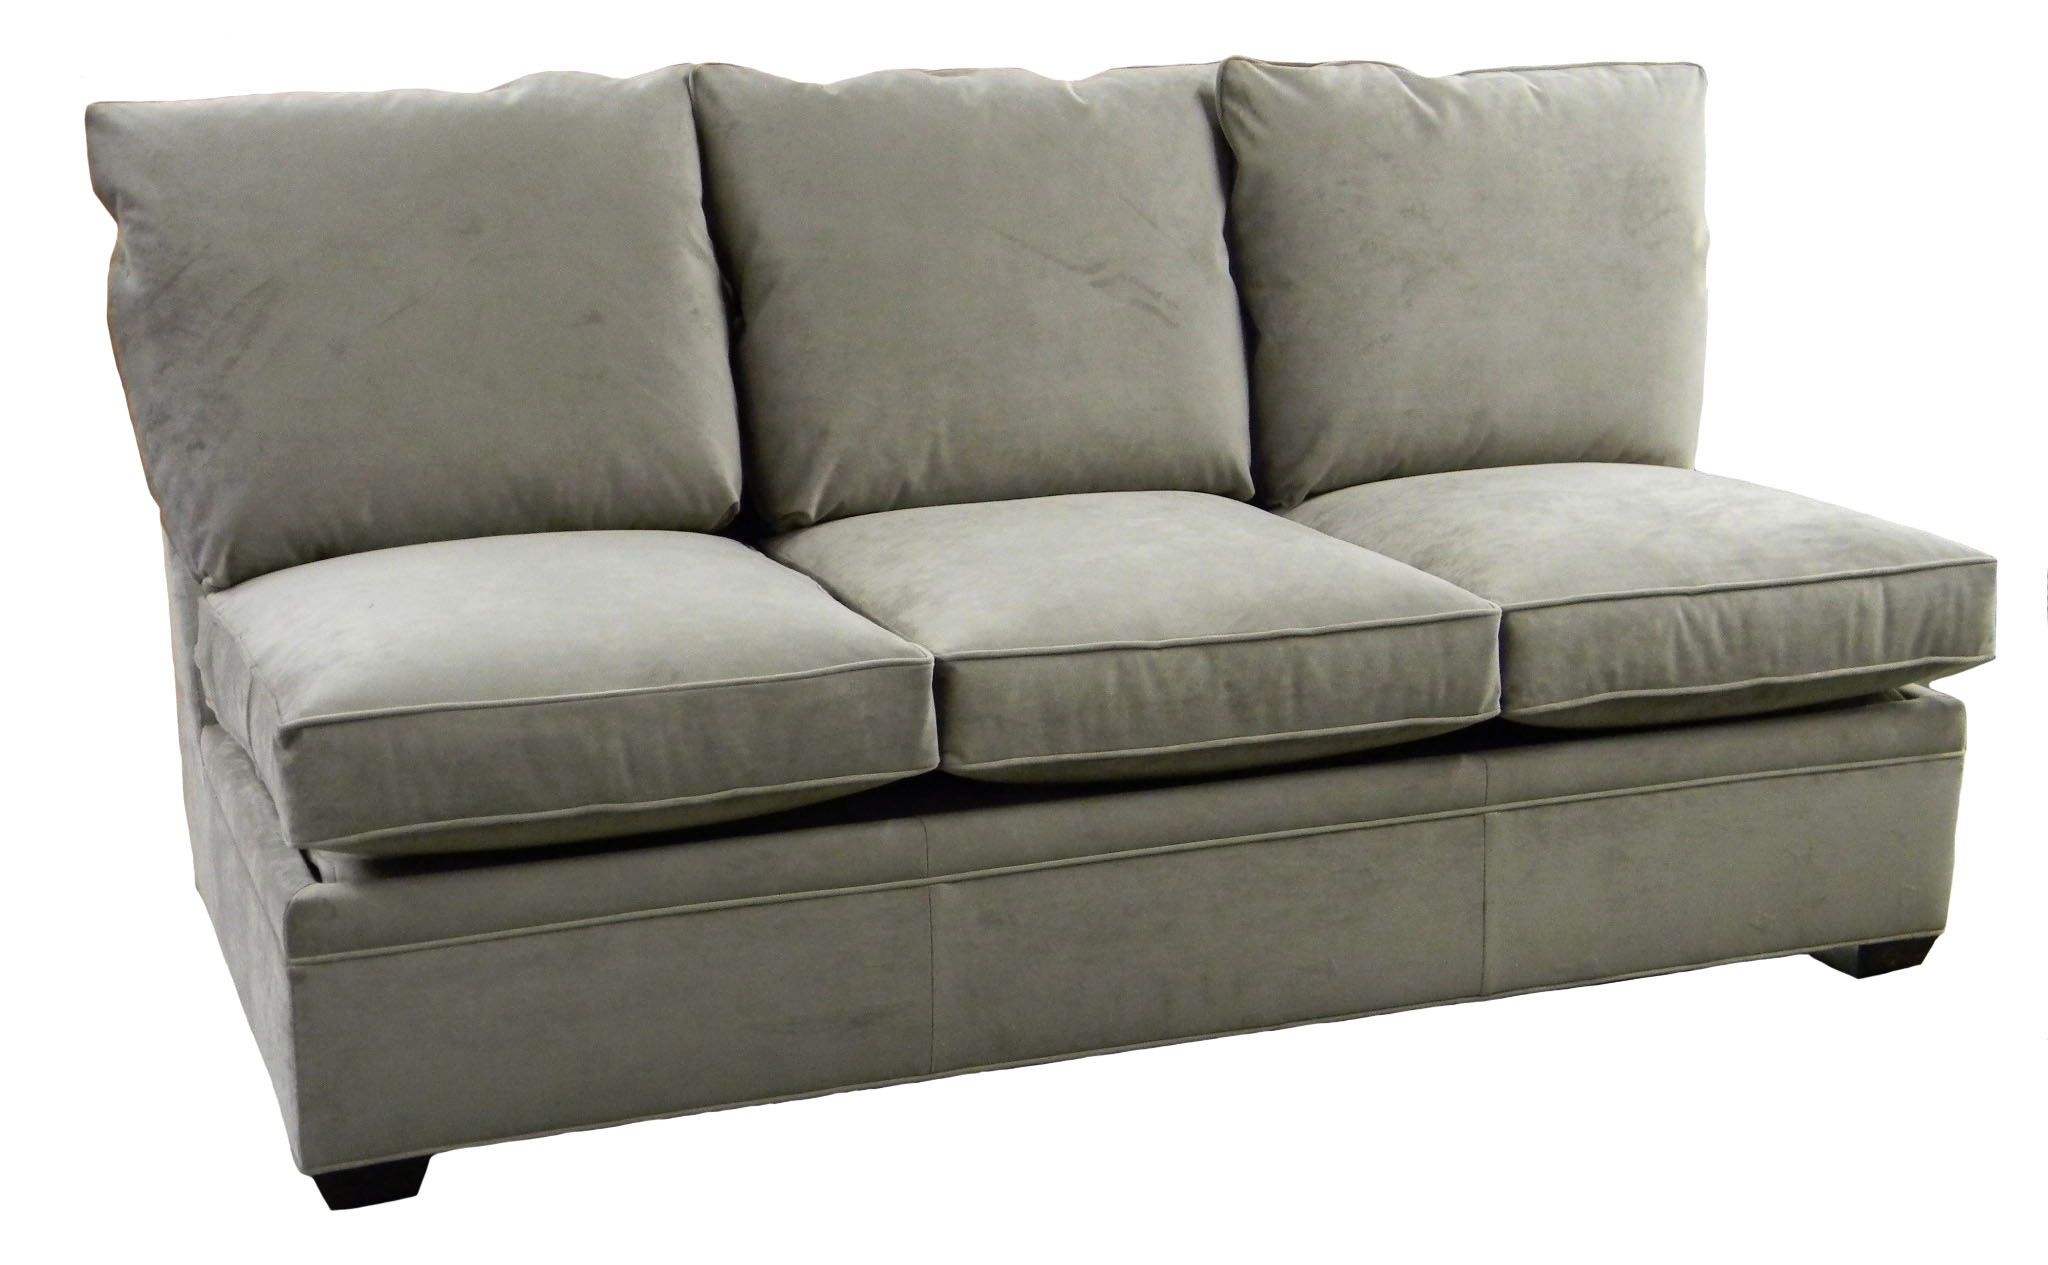 Queen Sofa Bed Ottoman Sectional Armless Sleeper Sofa Queen Custom Made Usa Nc Carolina Chair